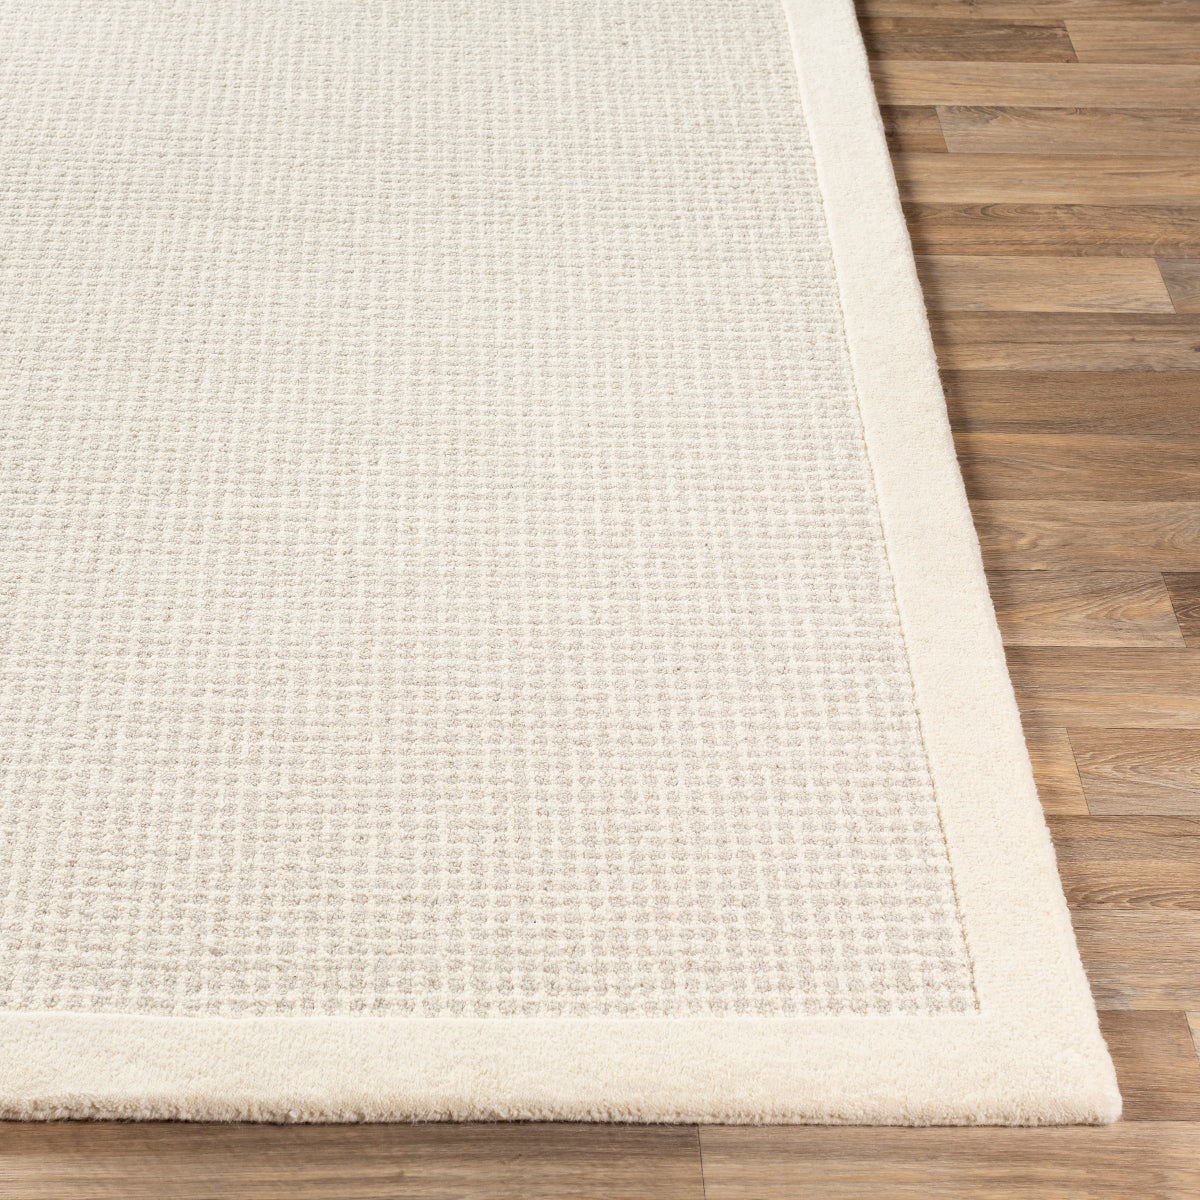 Hand Tufted Wool Border Rug Cream